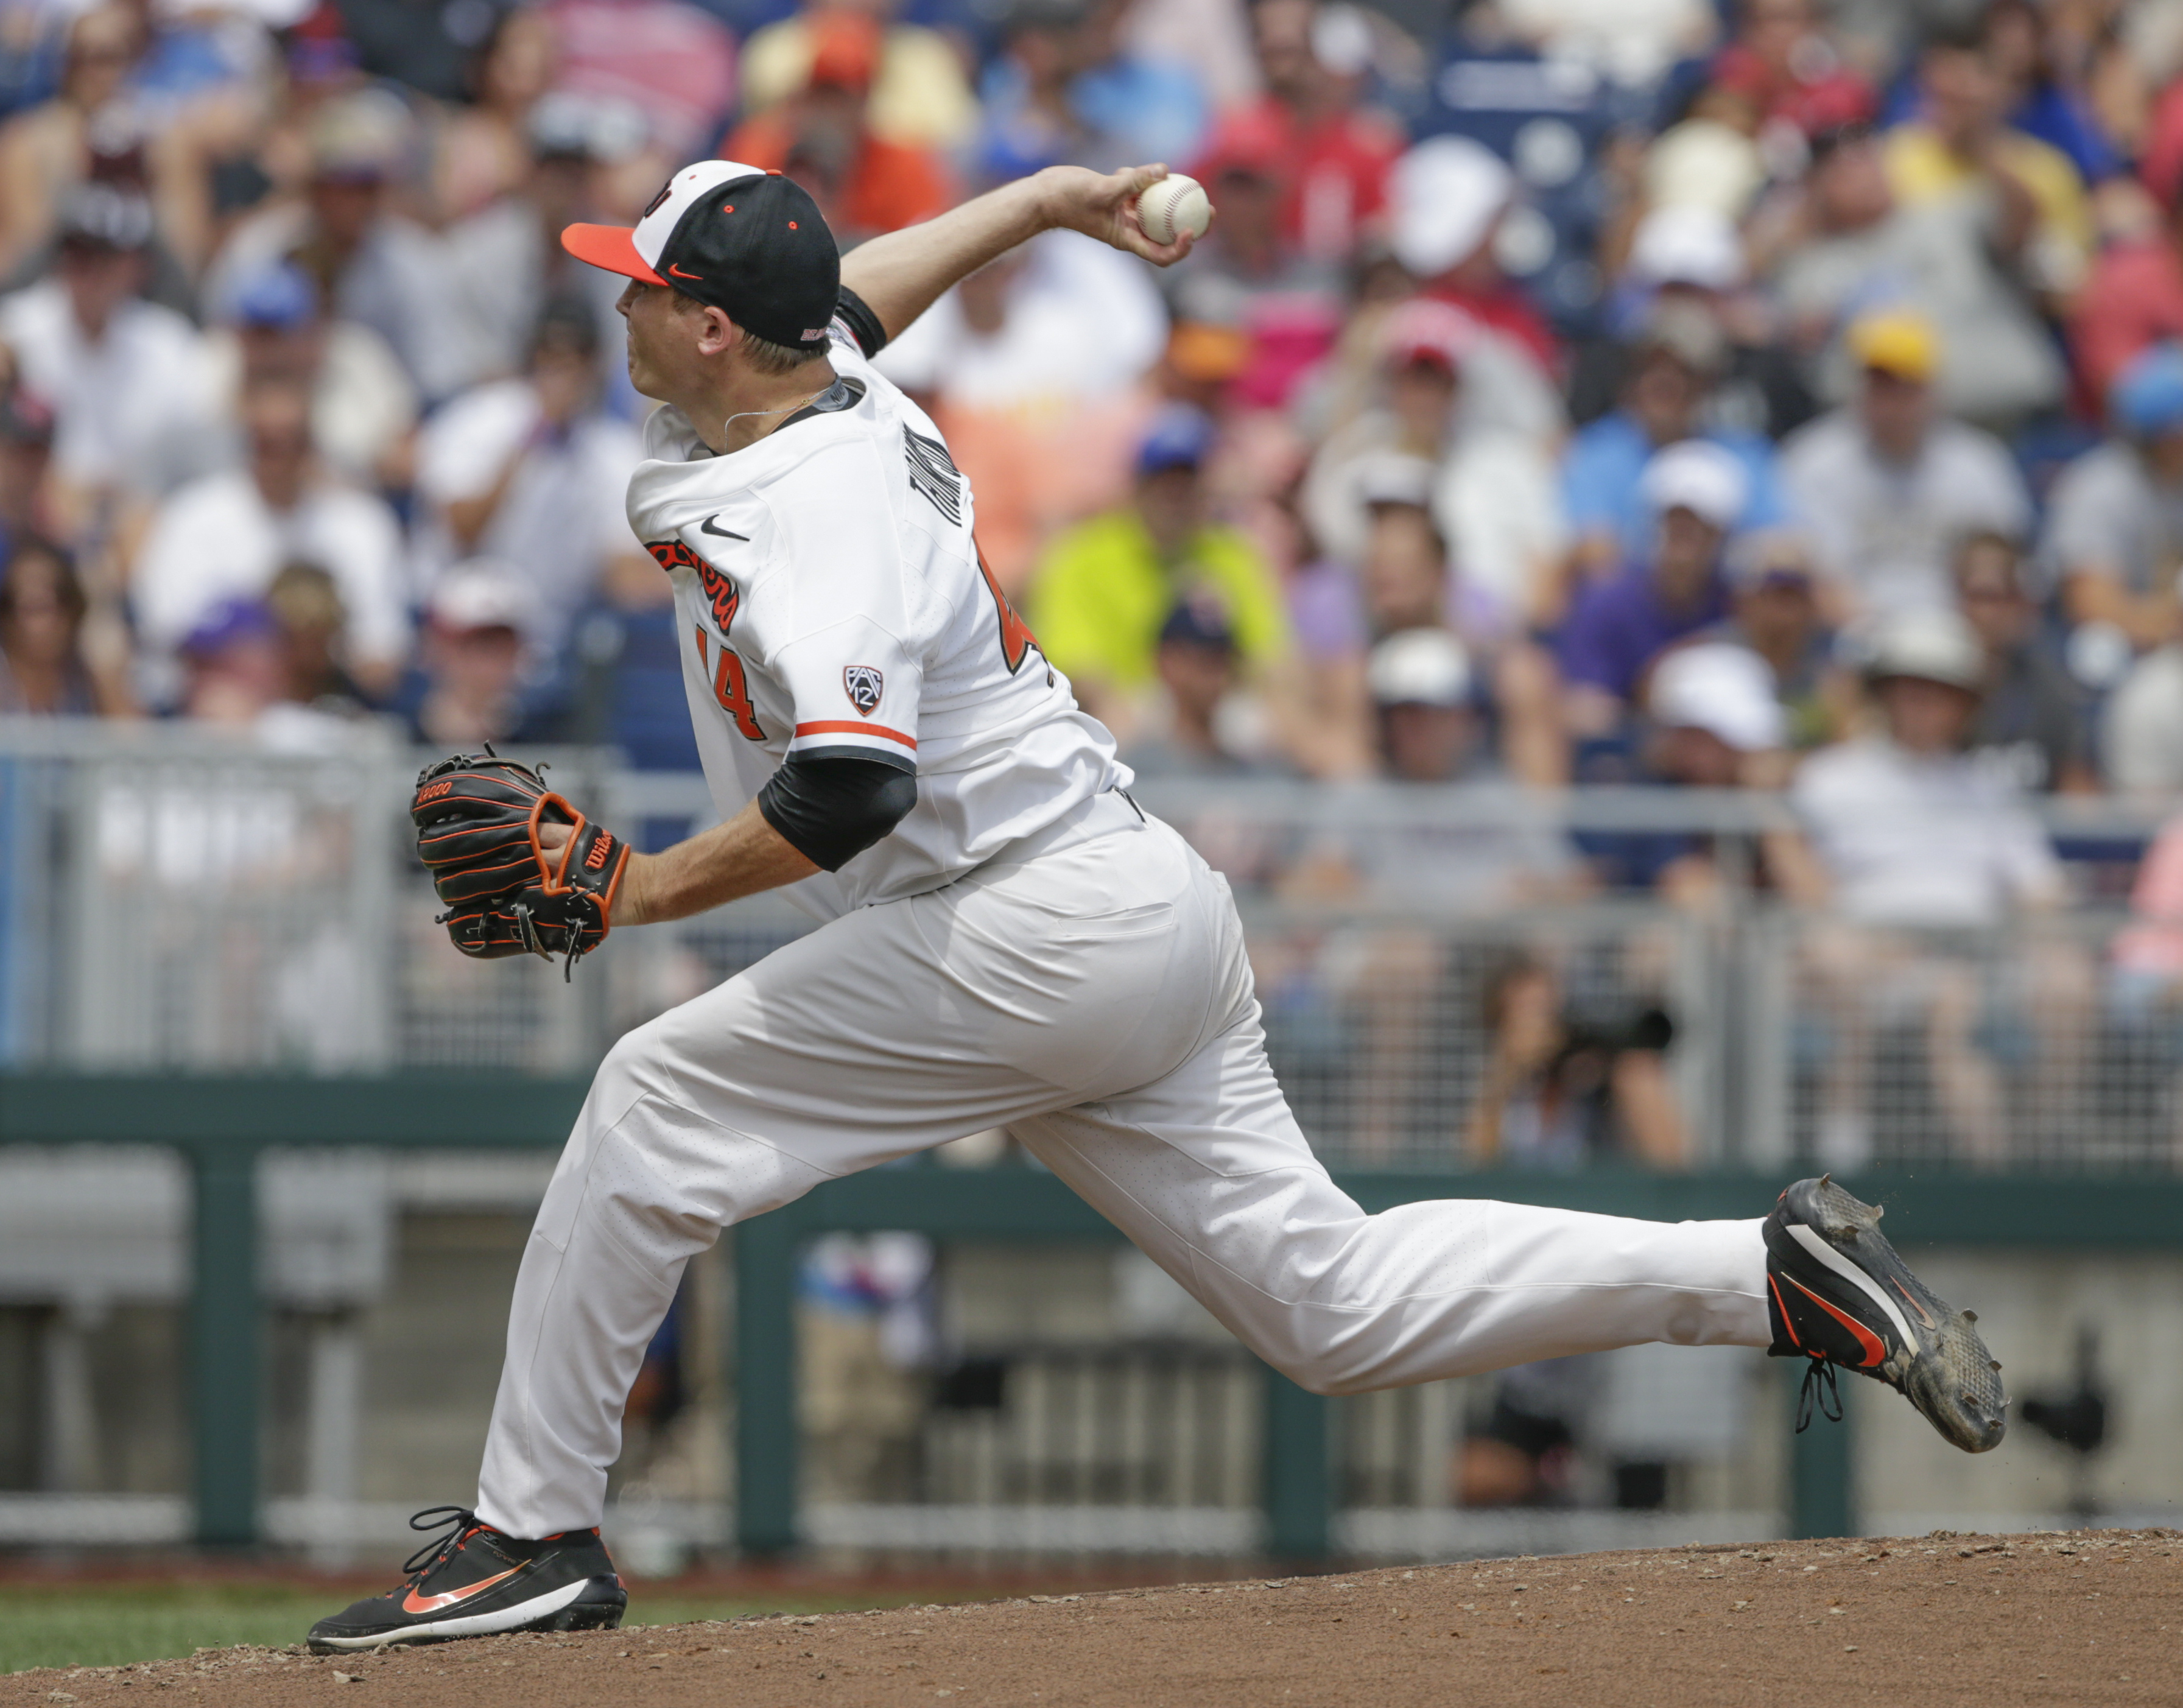 Oregon State pitcher Jake Thompson (44) works against Cal State Fullerton during the first inning of an NCAA mens College World Series baseball game in Omaha, Neb., Saturday, June 17, 2017. (AP Photo/Nati Harnik)